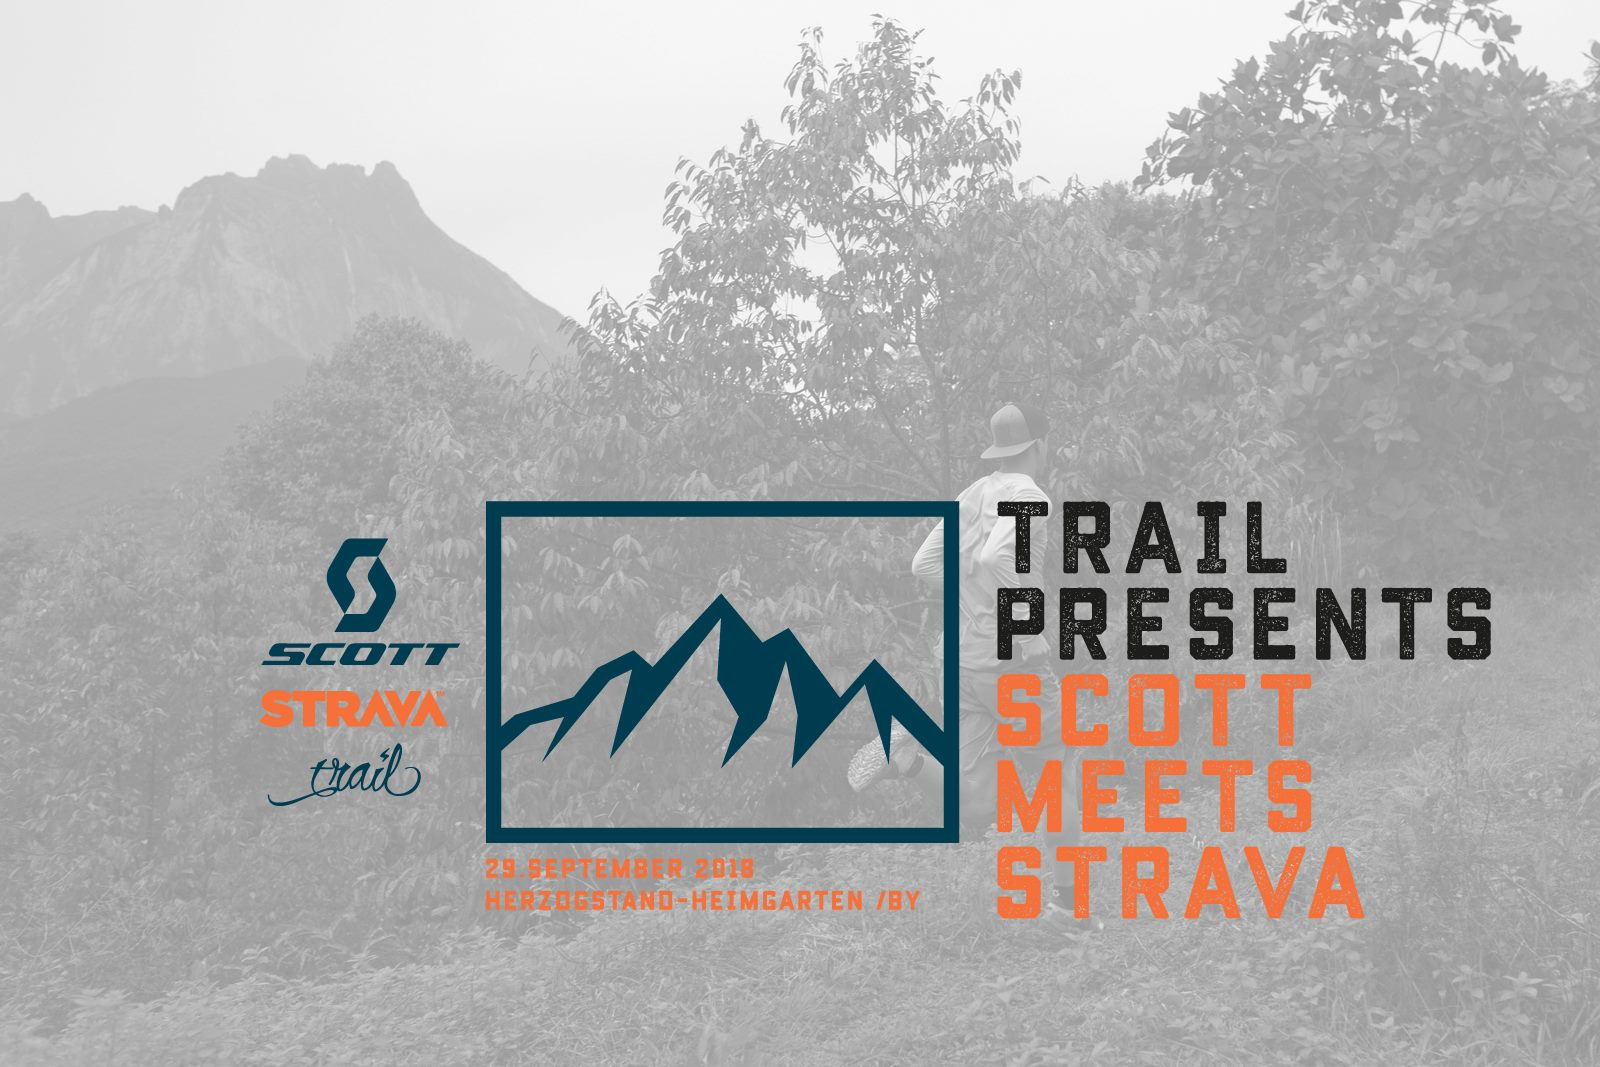 TRAIL meets SCOTT und STRAVA: Neues Event in Garmisch-Partenkirchen